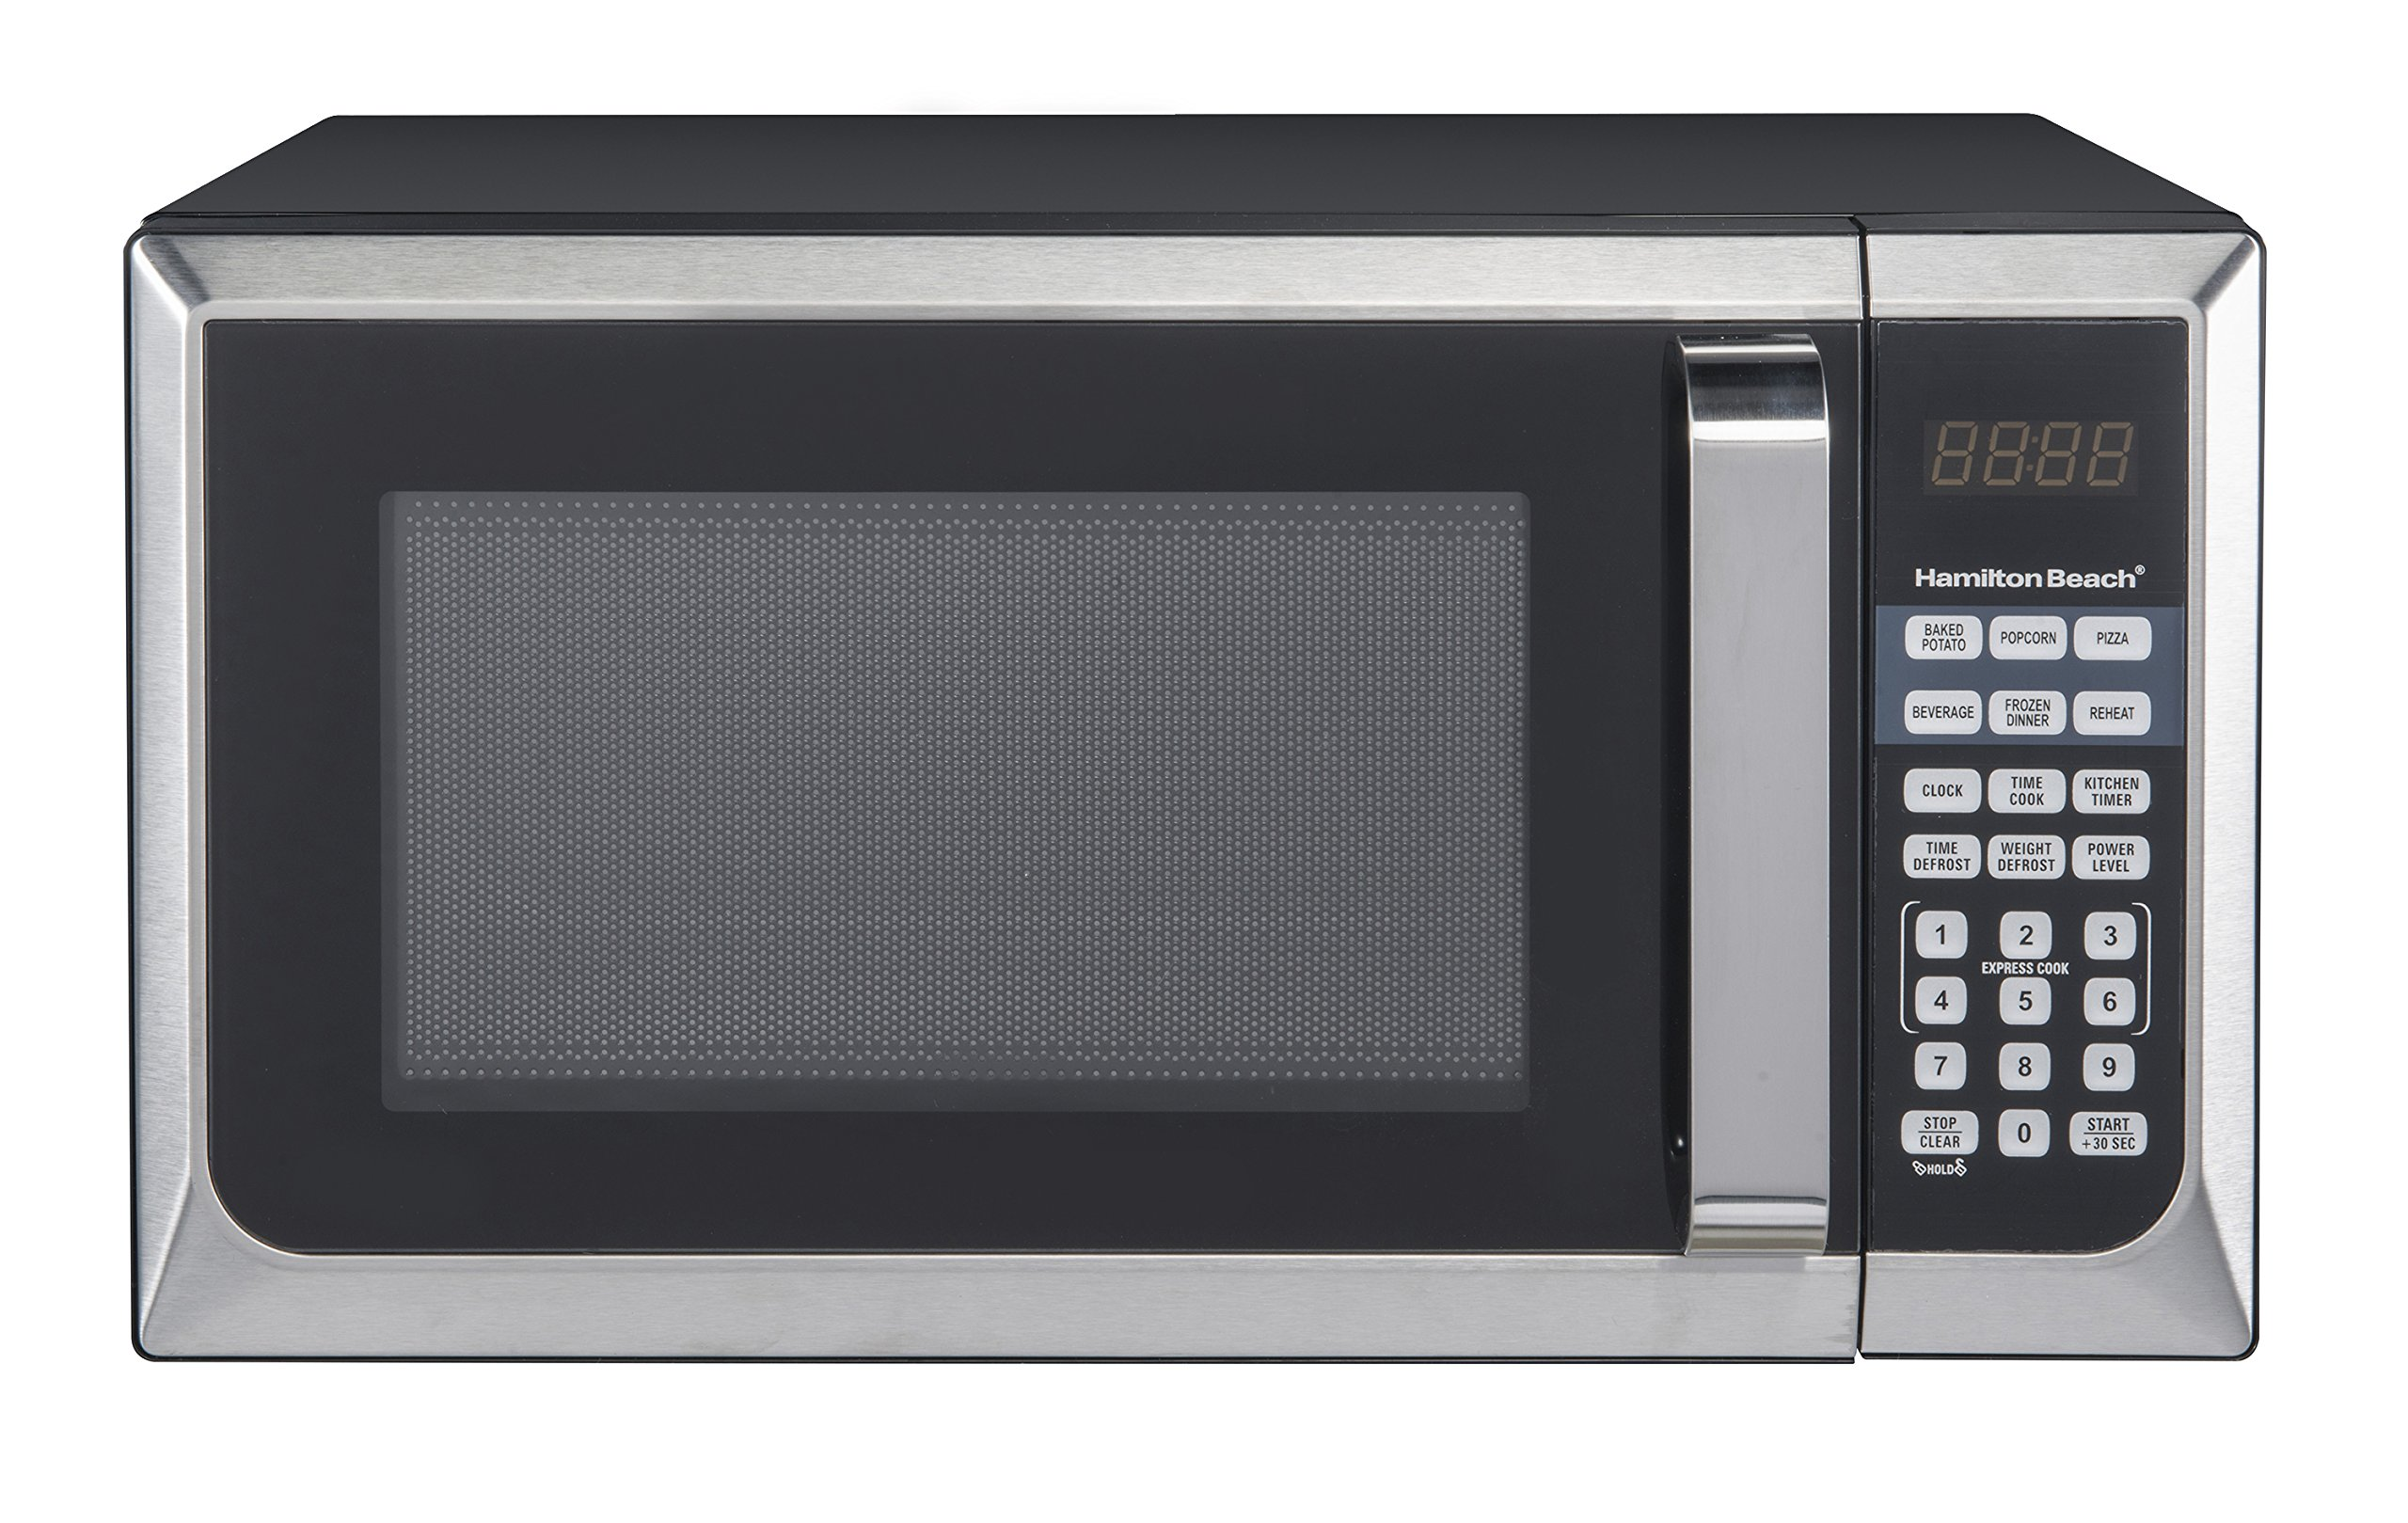 Hamilton Beach 0.9 Cu. ft. Stainless Steel Microwave Oven